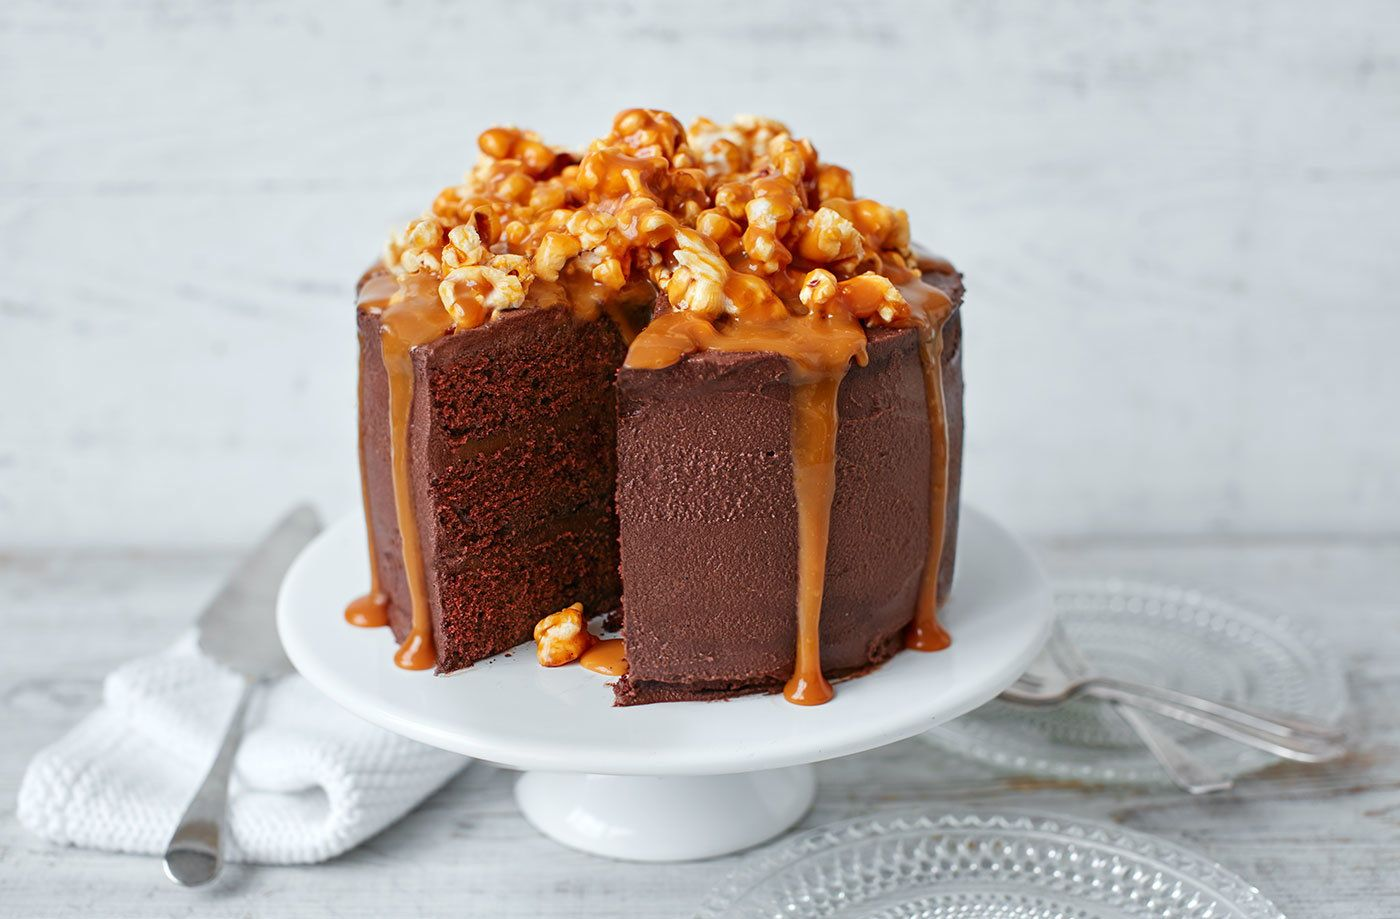 Chocolate popcorn and salted caramel cake recipe with